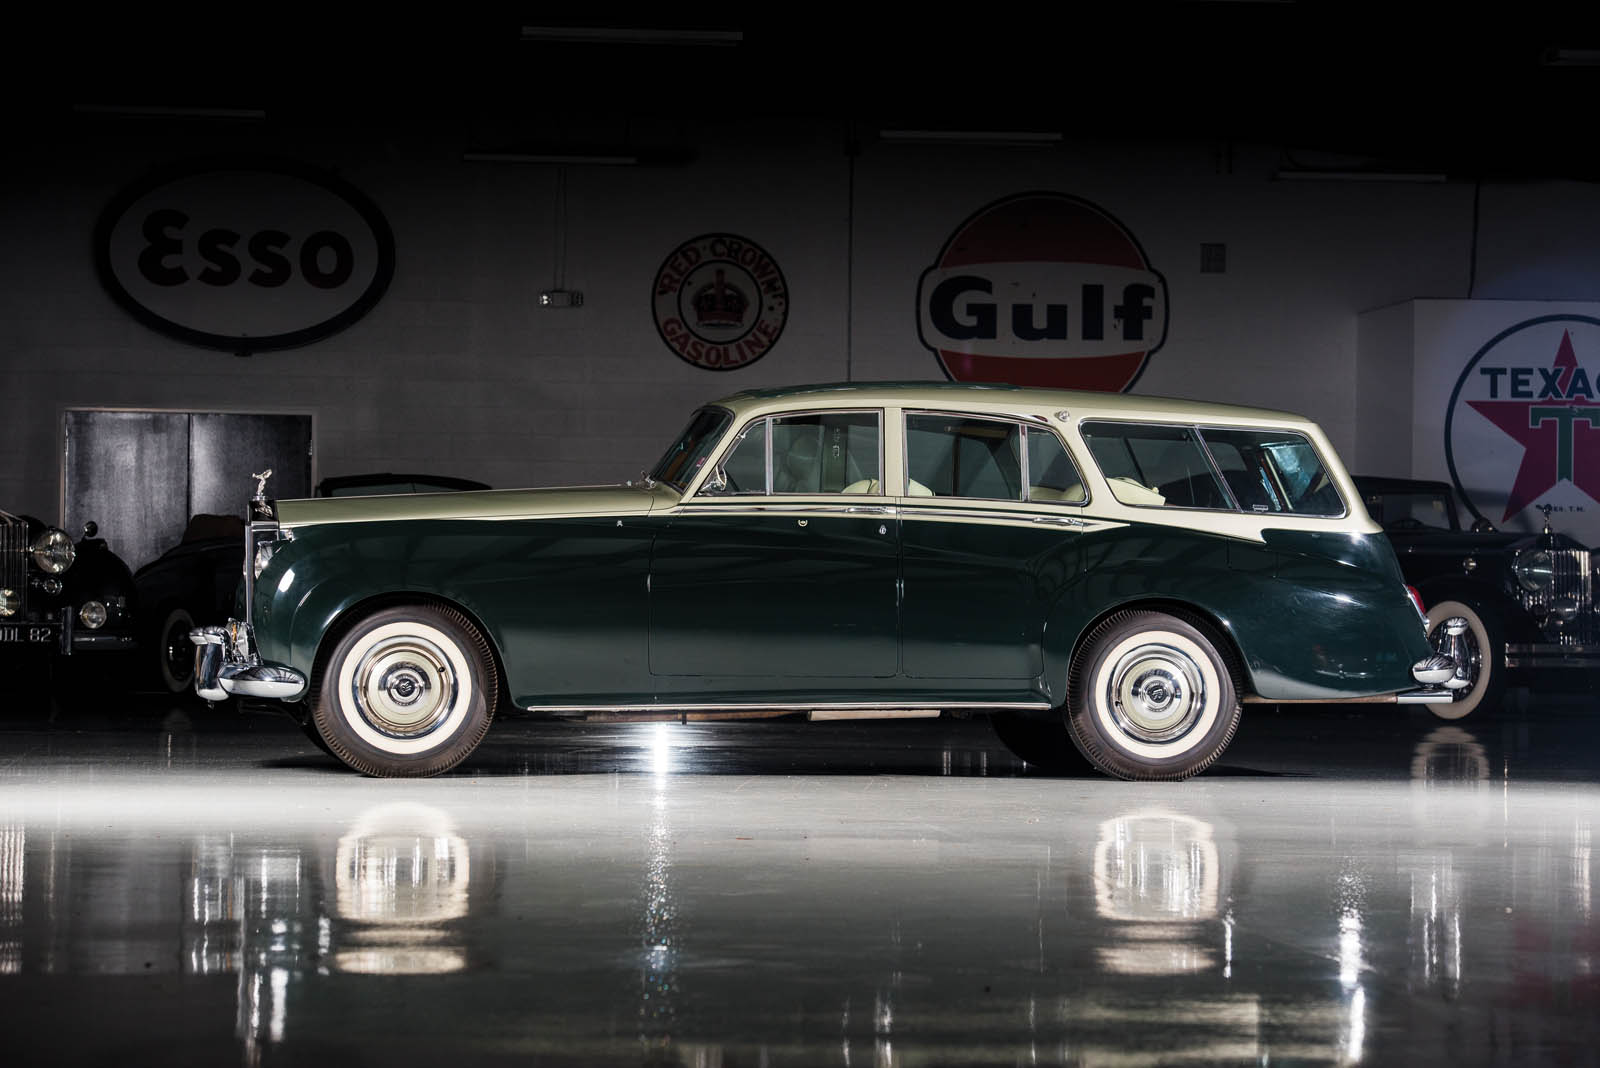 Cullinan Rolls Royce Interior >> This Rolls-Royce Silver Cloud Wagon Ought To Do The Trick Until Project Cullinan Is Ready ...